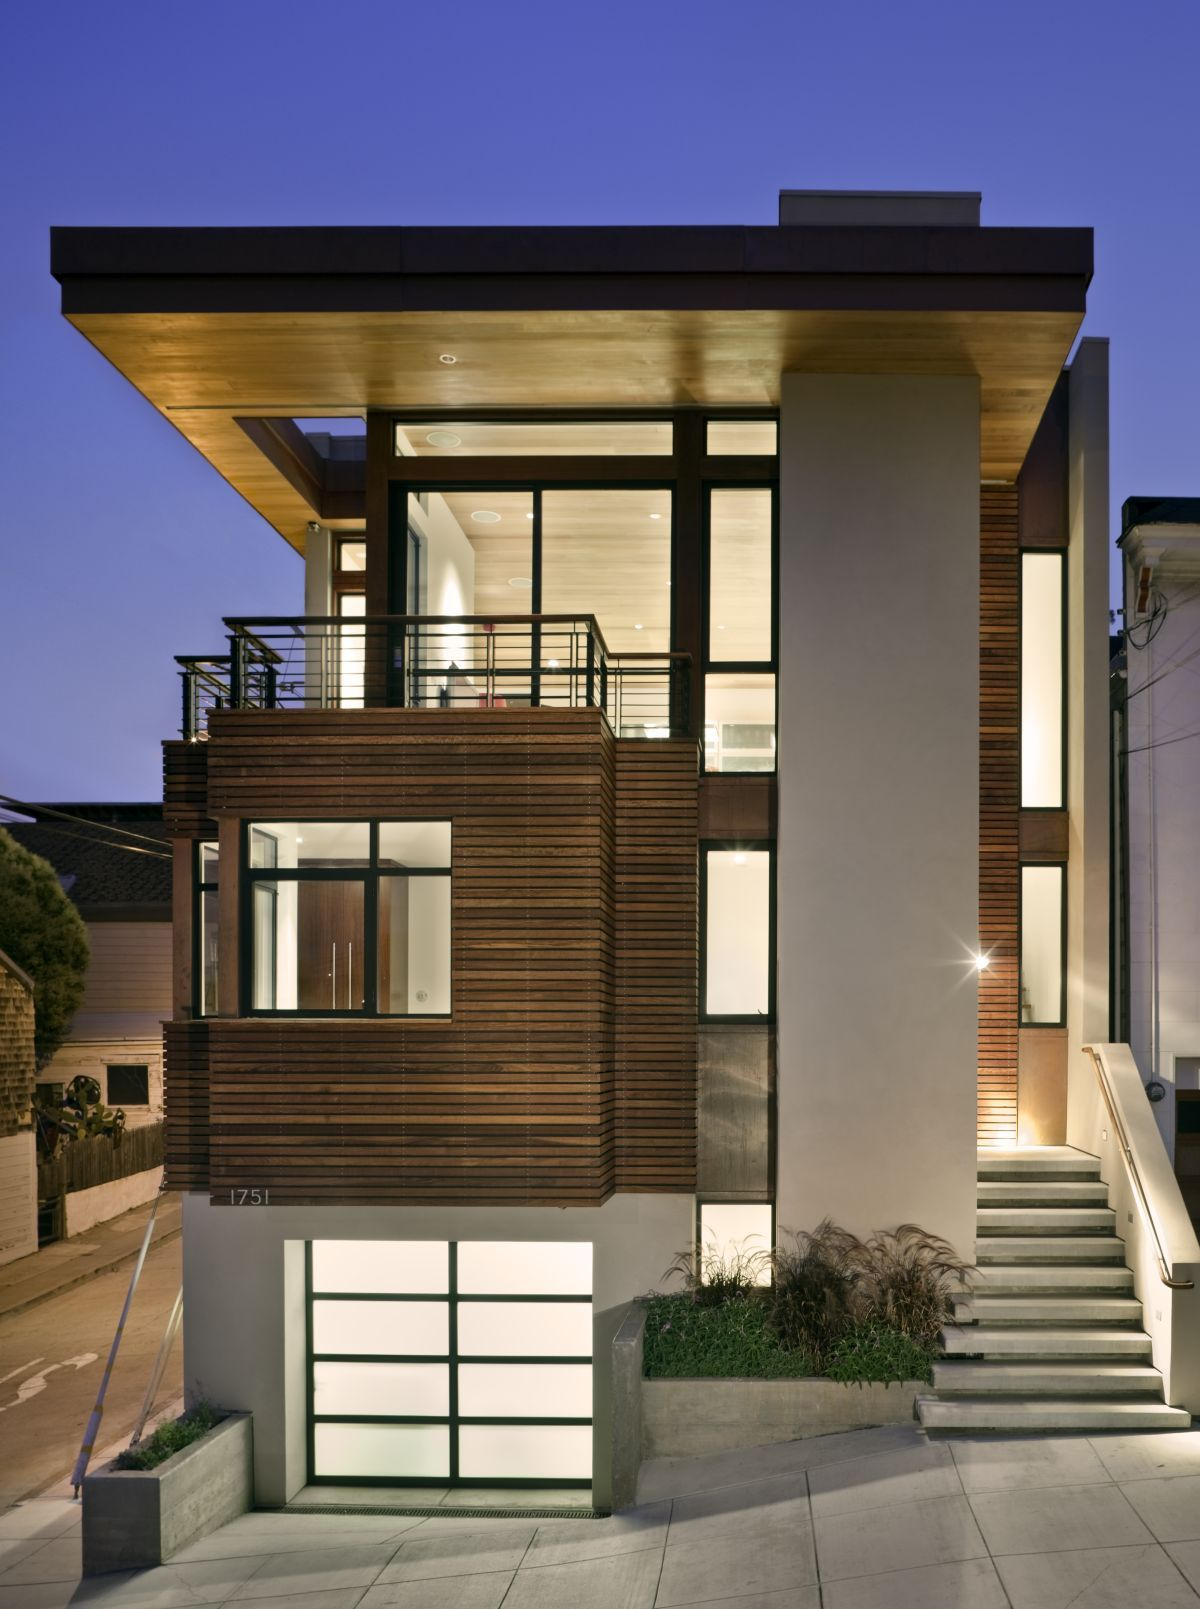 Contemporary Home Exterior Design Ideas | Pinterest | Simple house ...